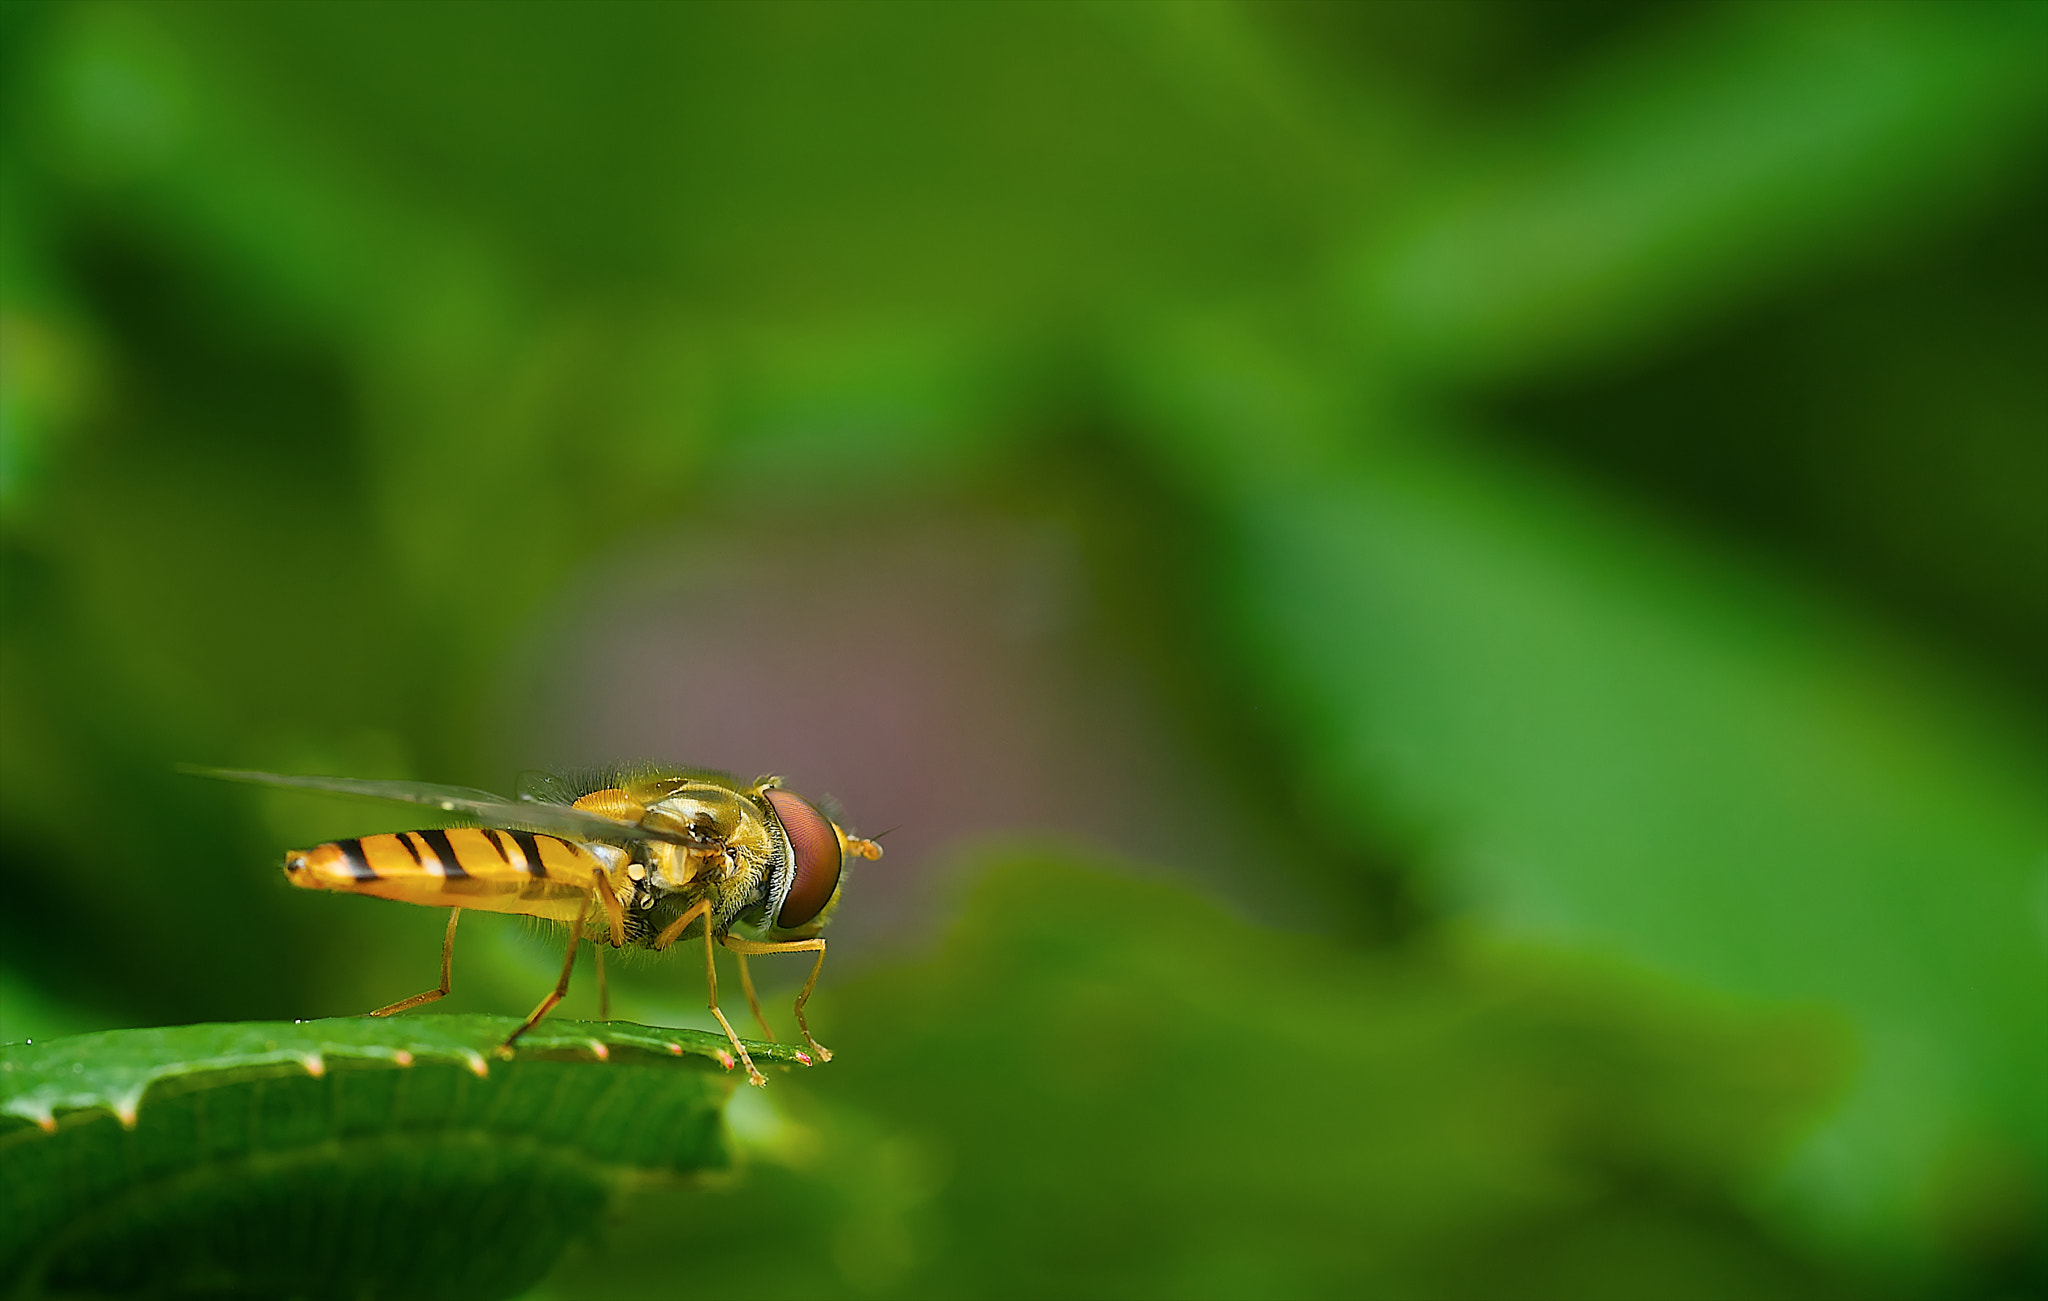 Photograph Hoverfly by John Barker on 500px